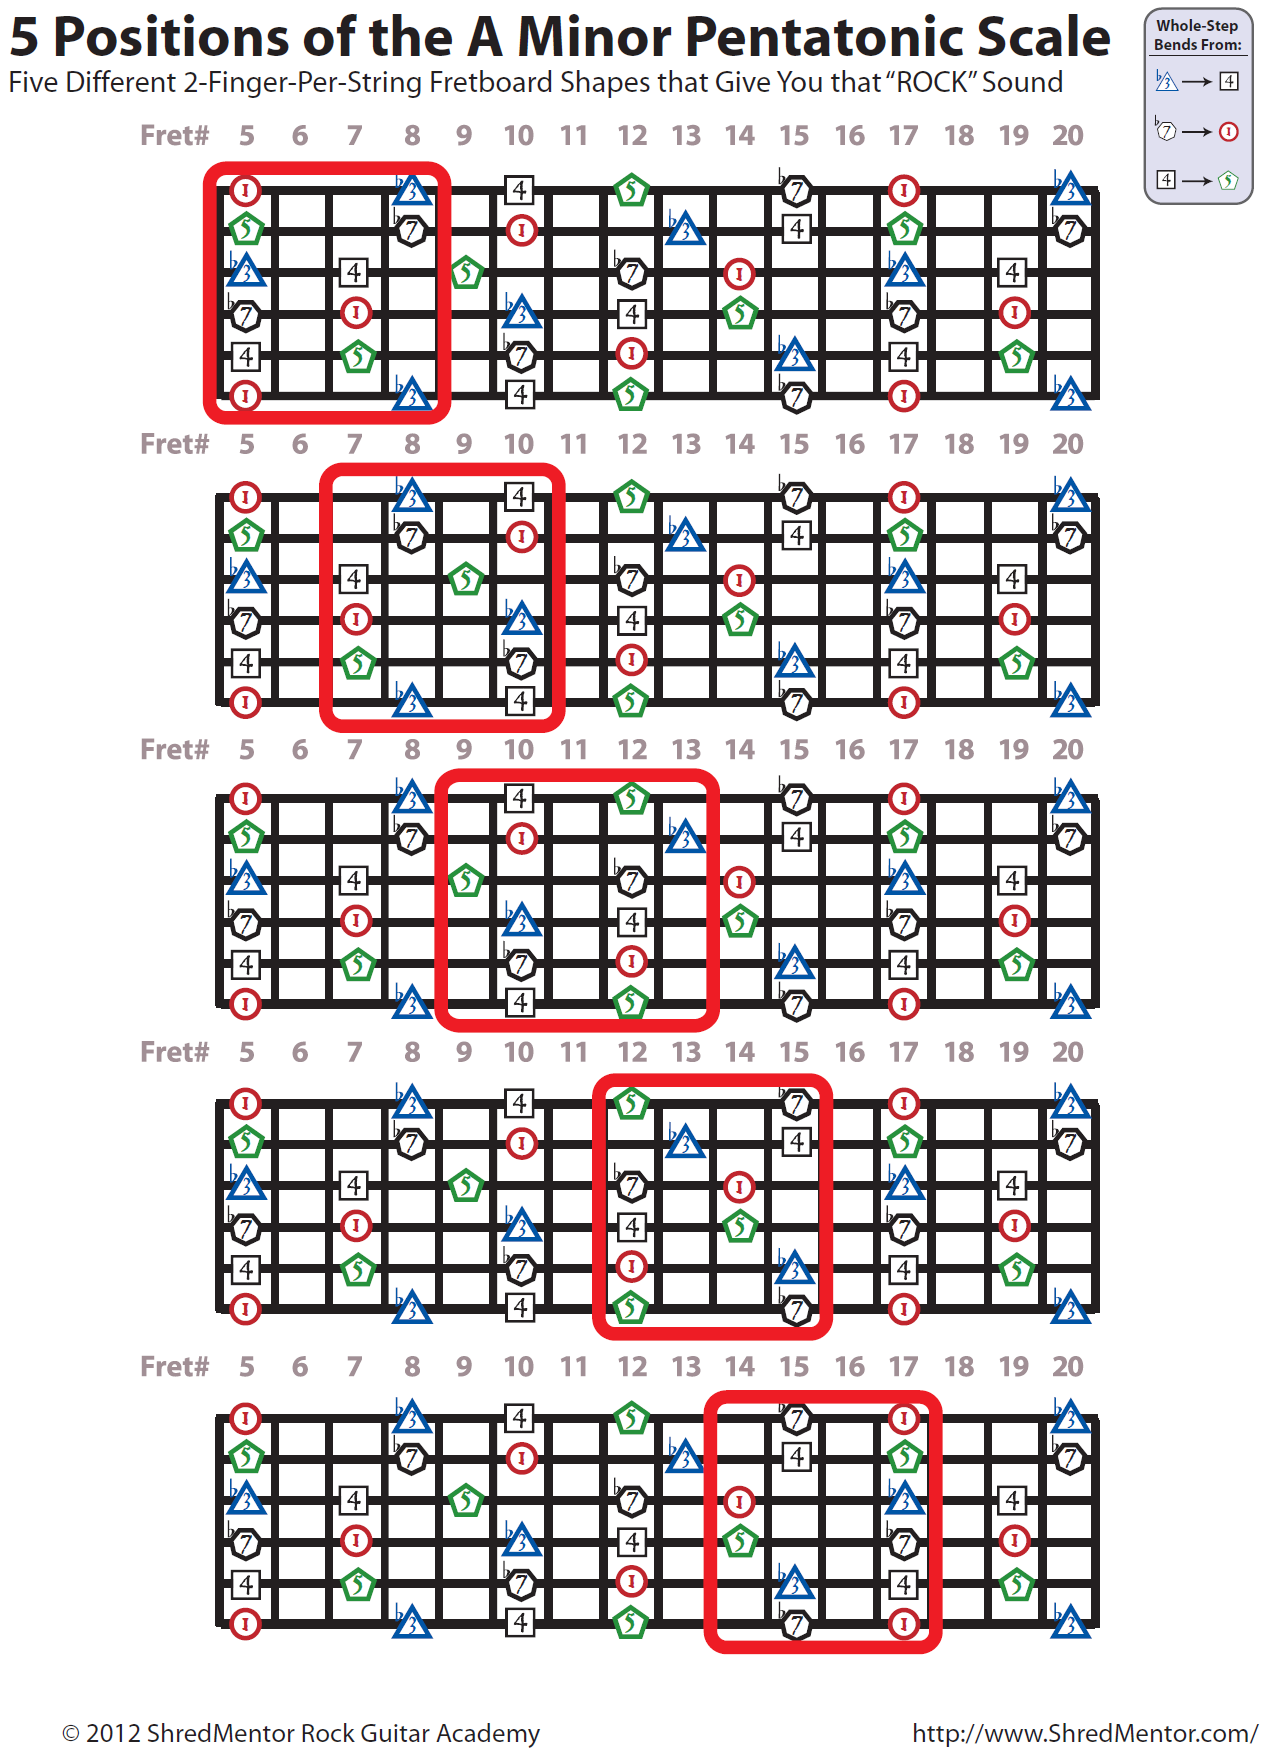 graphic regarding Guitar Pentatonic Scale Chart Printable named 5 Employment of the A Tiny PENTATONIC SCALE (with scale